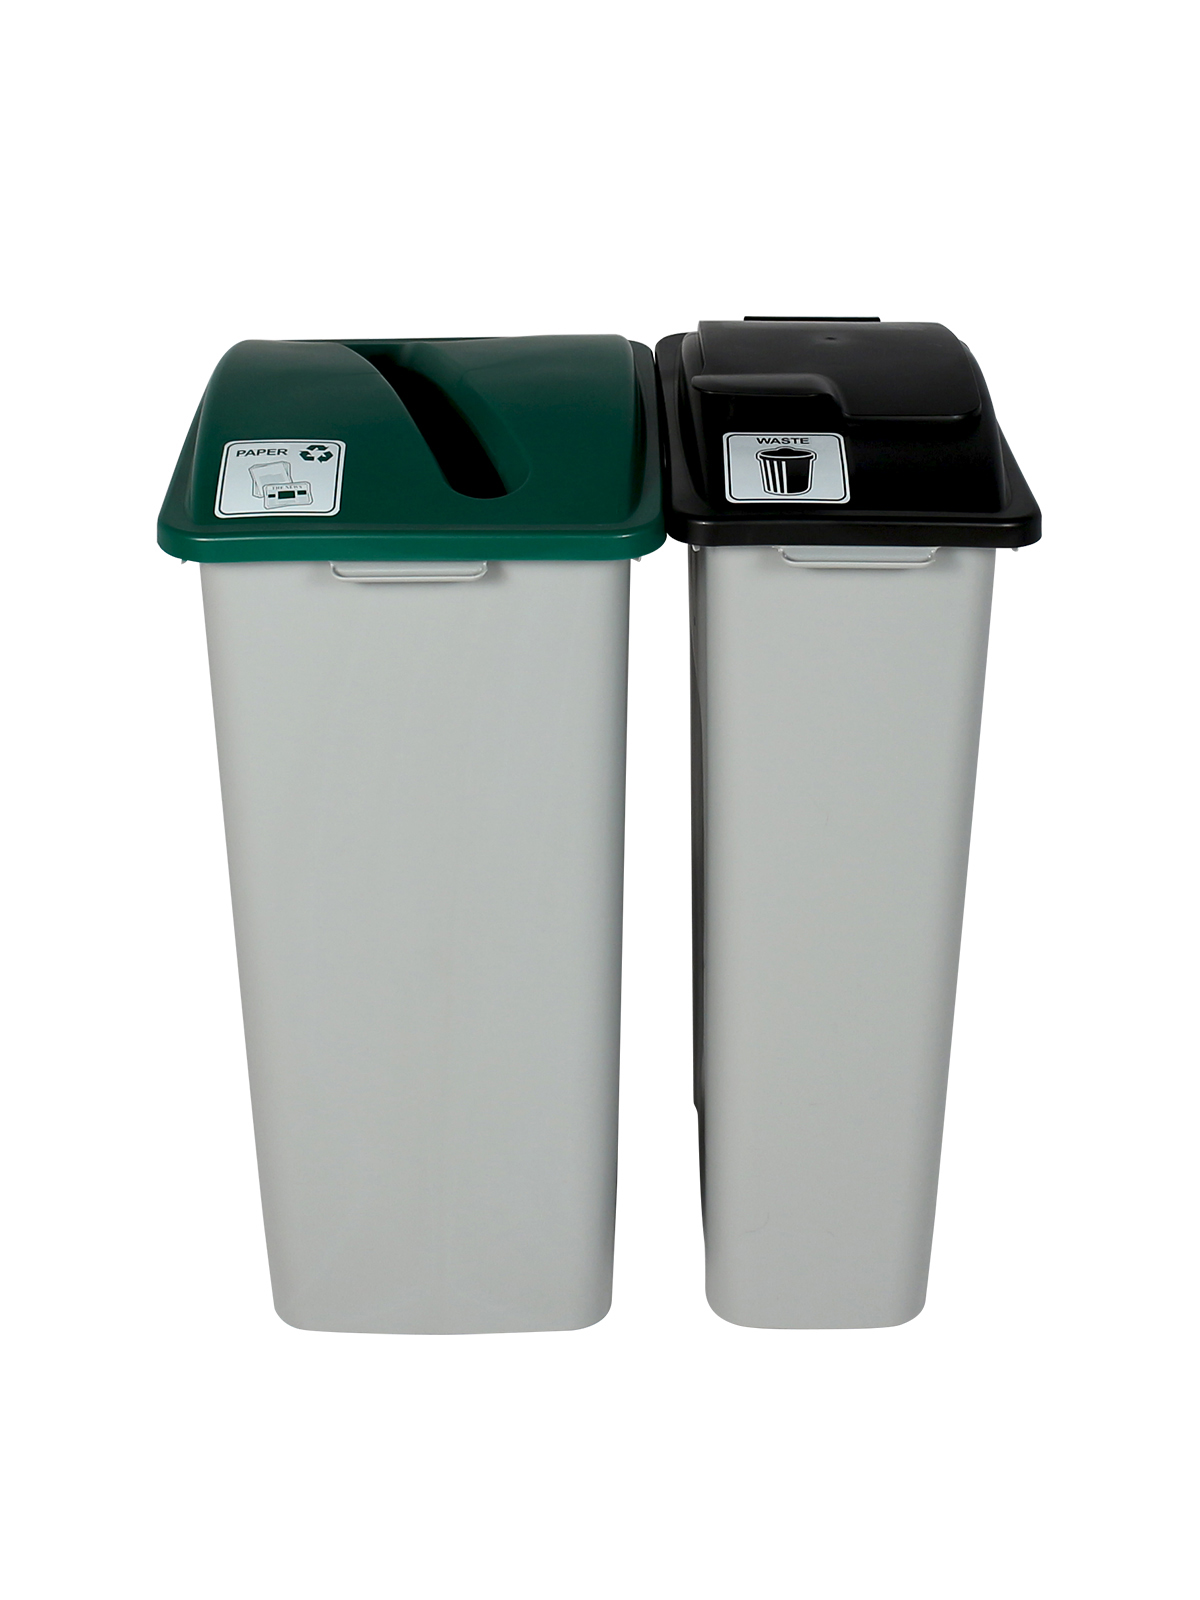 WASTE WATCHER XL - Double - Paper-Waste - Slot-Solid Lift - Grey-Green-Black